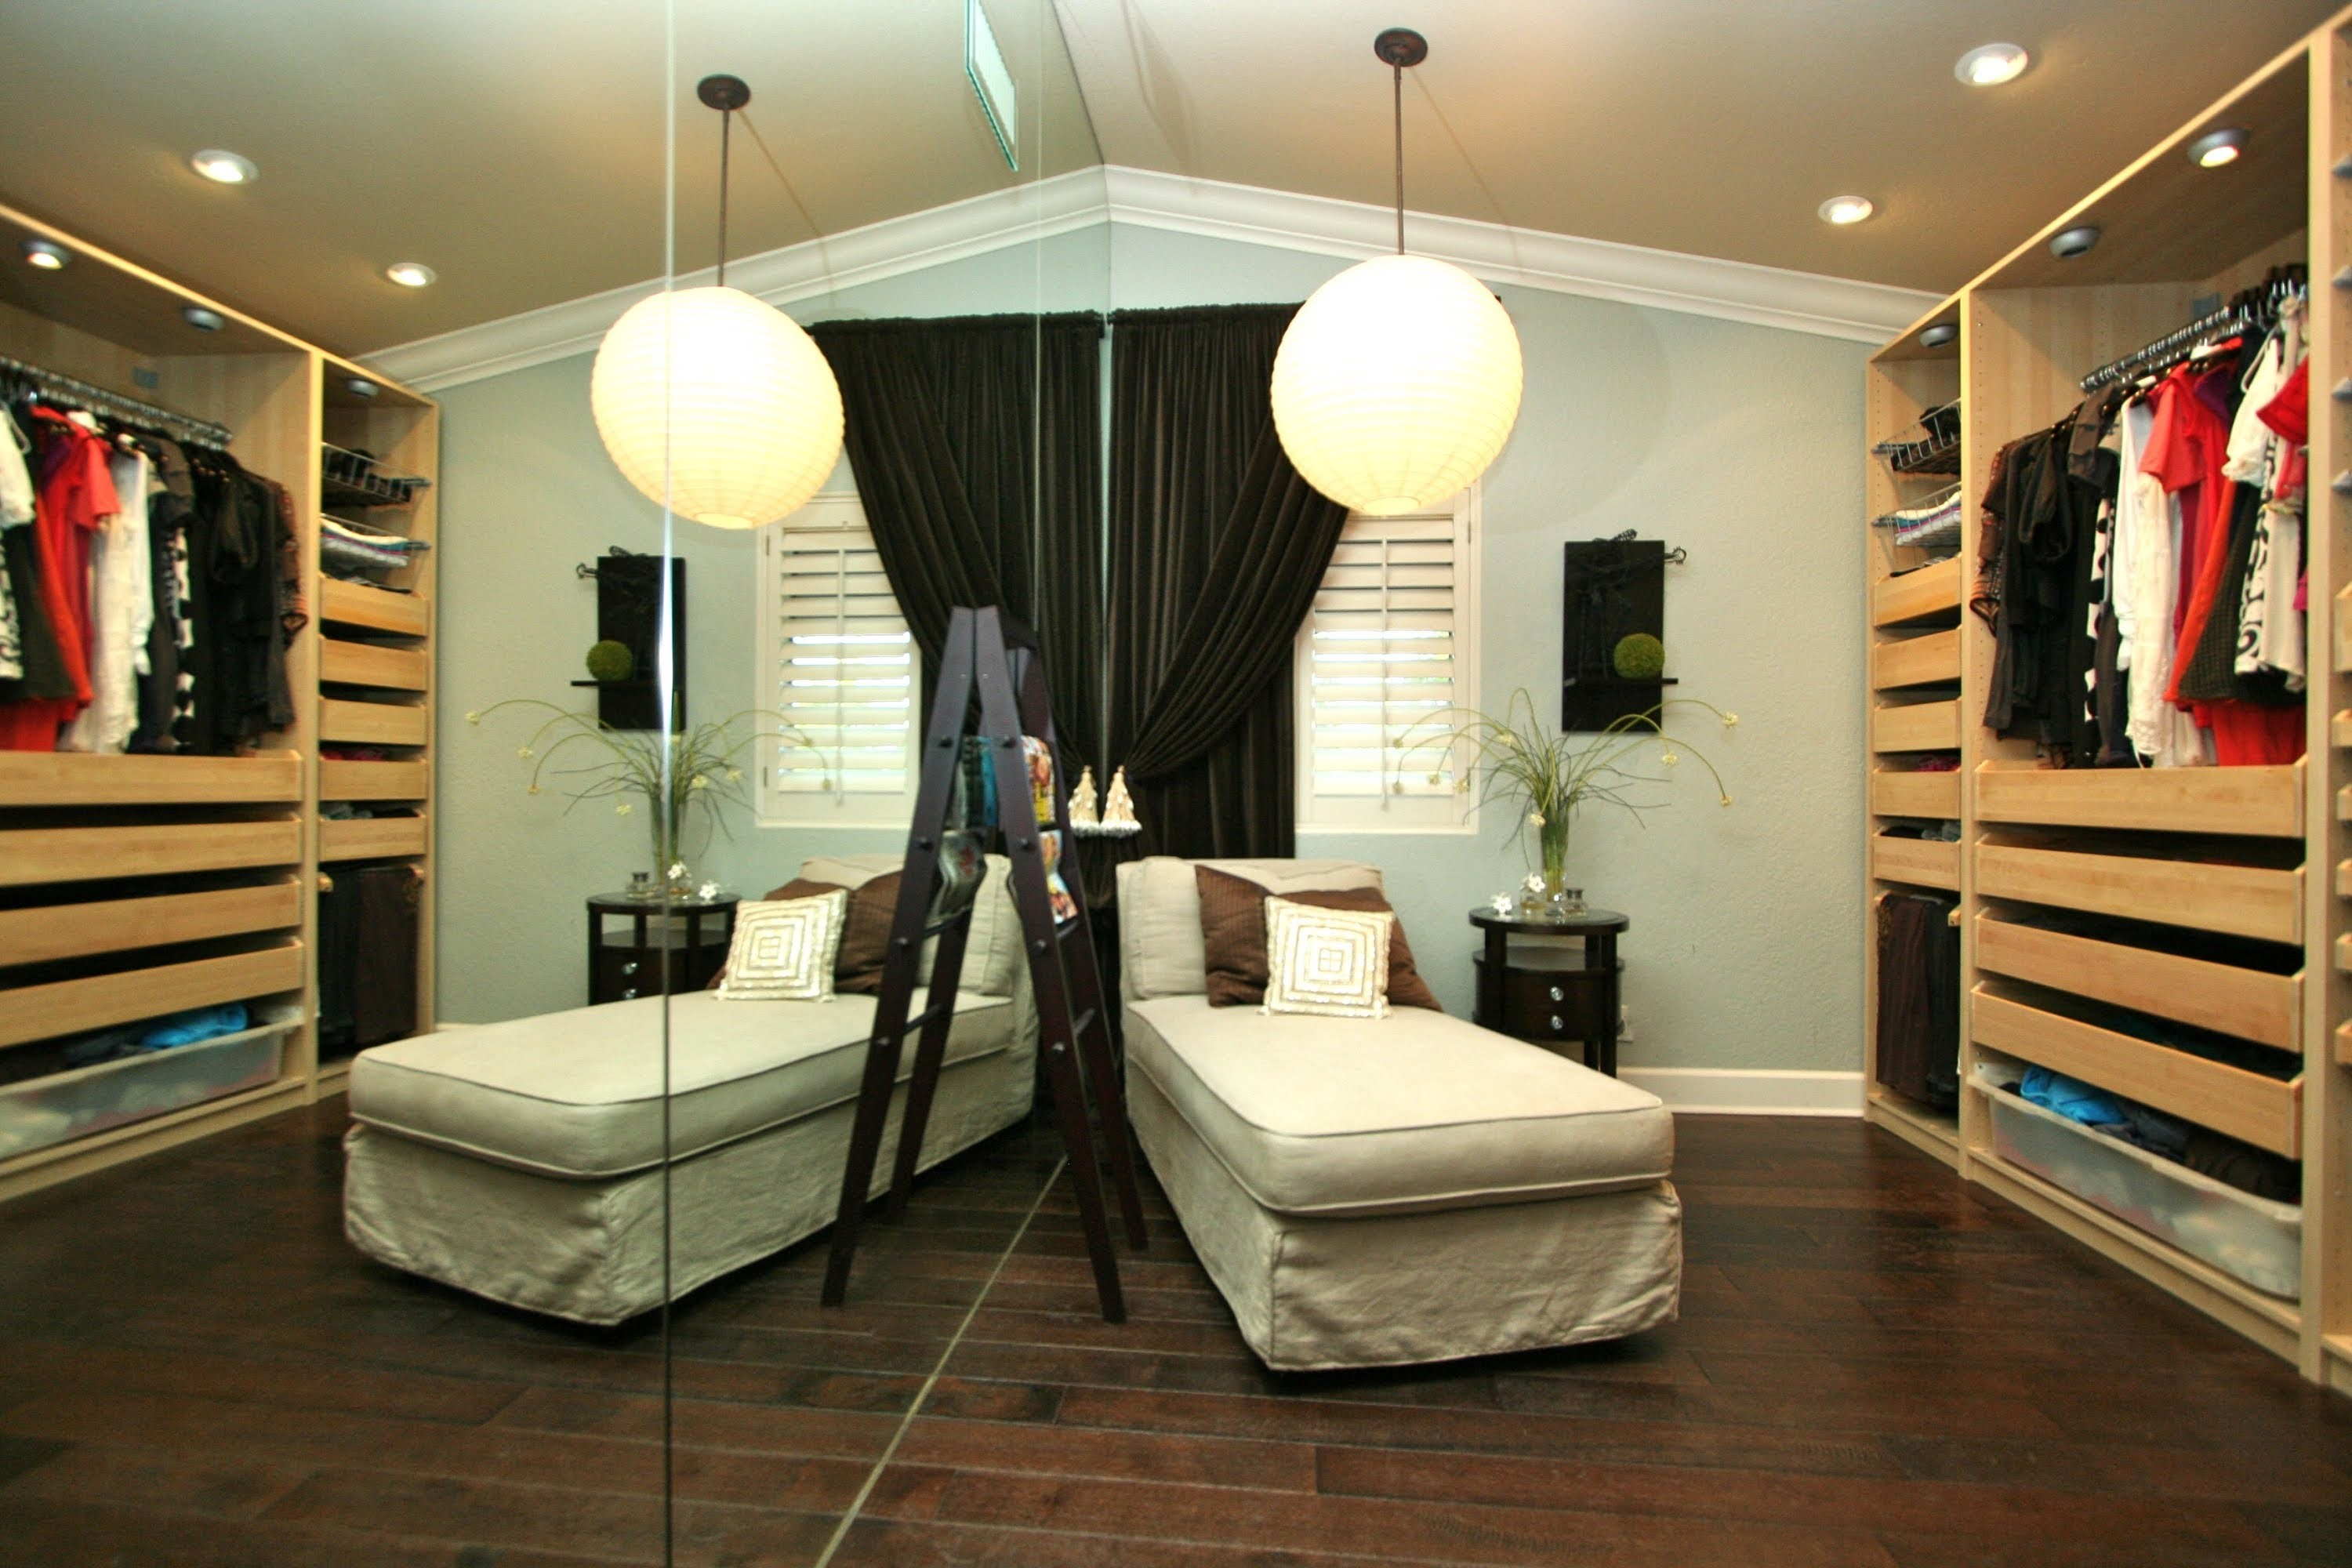 Interior Design - Room Tour Decorating ideas for girls Bedroom